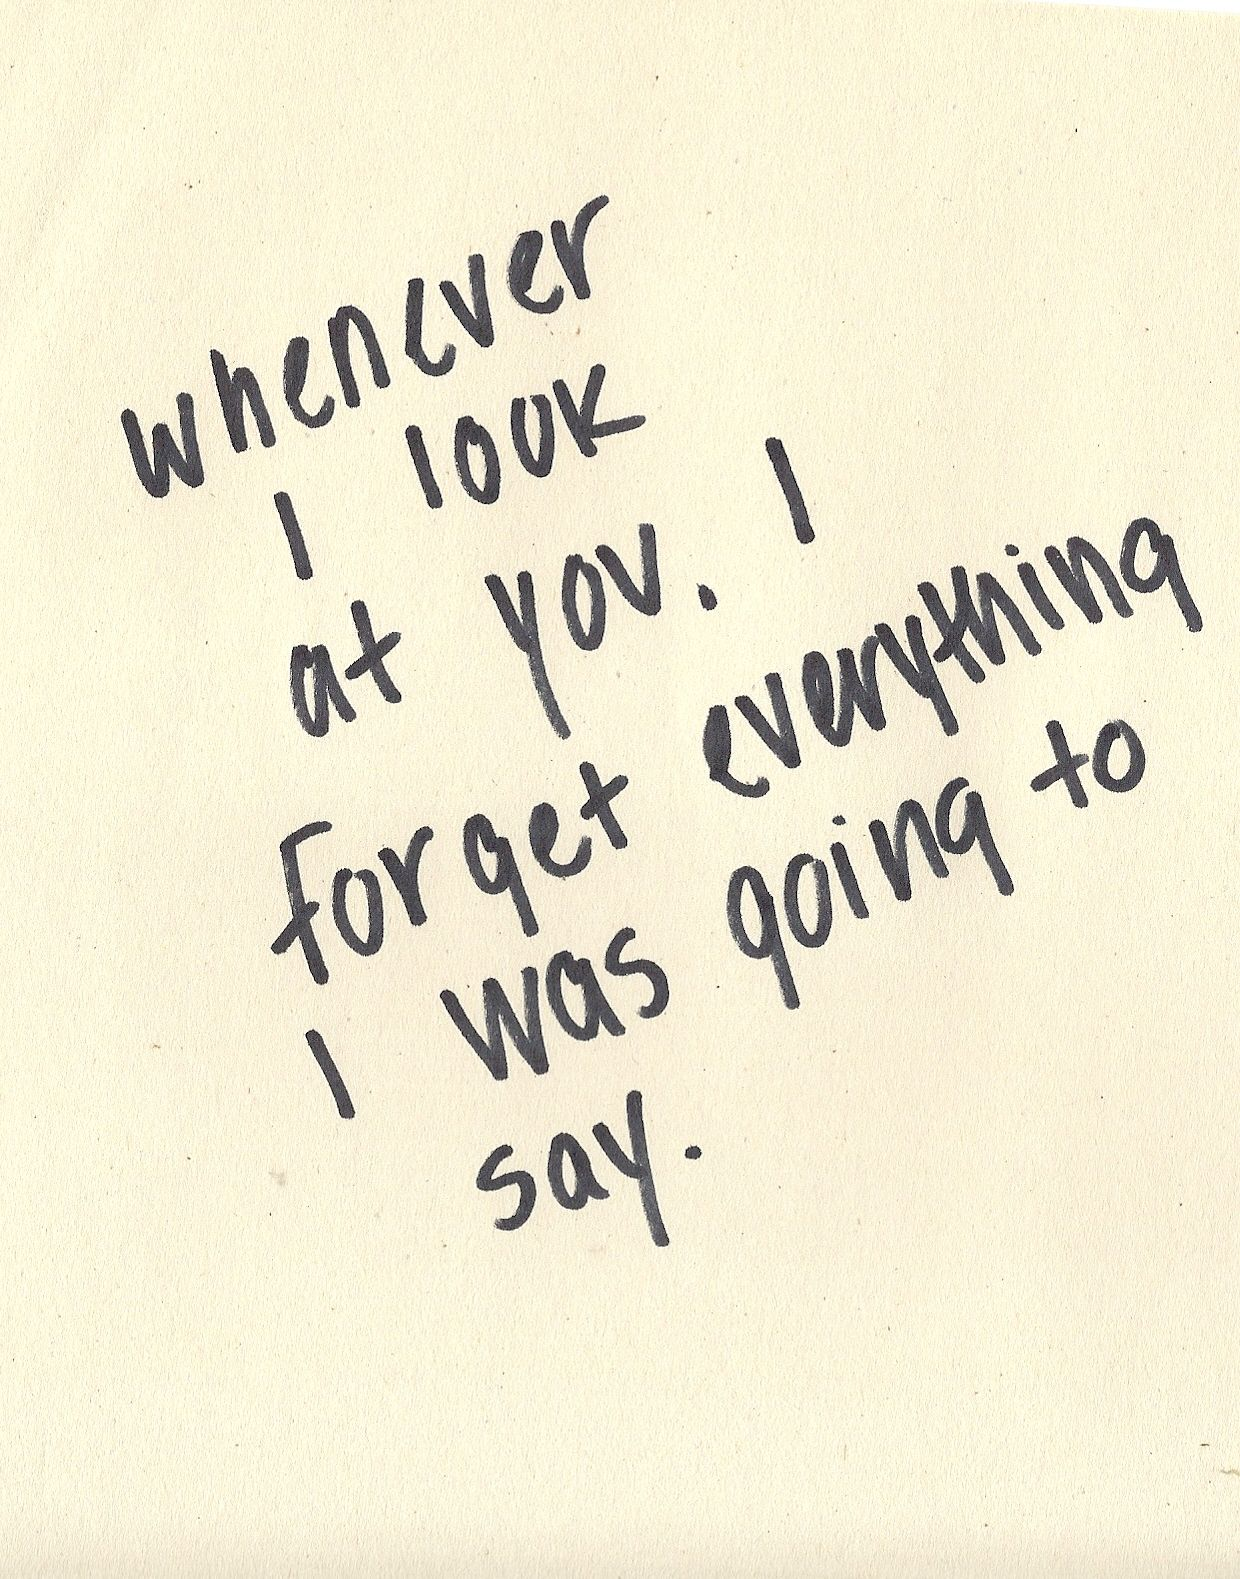 Whenever I Look At You I Forget Everything I Was Going To Say Crush Quotes For Him Crush Quotes Quotes